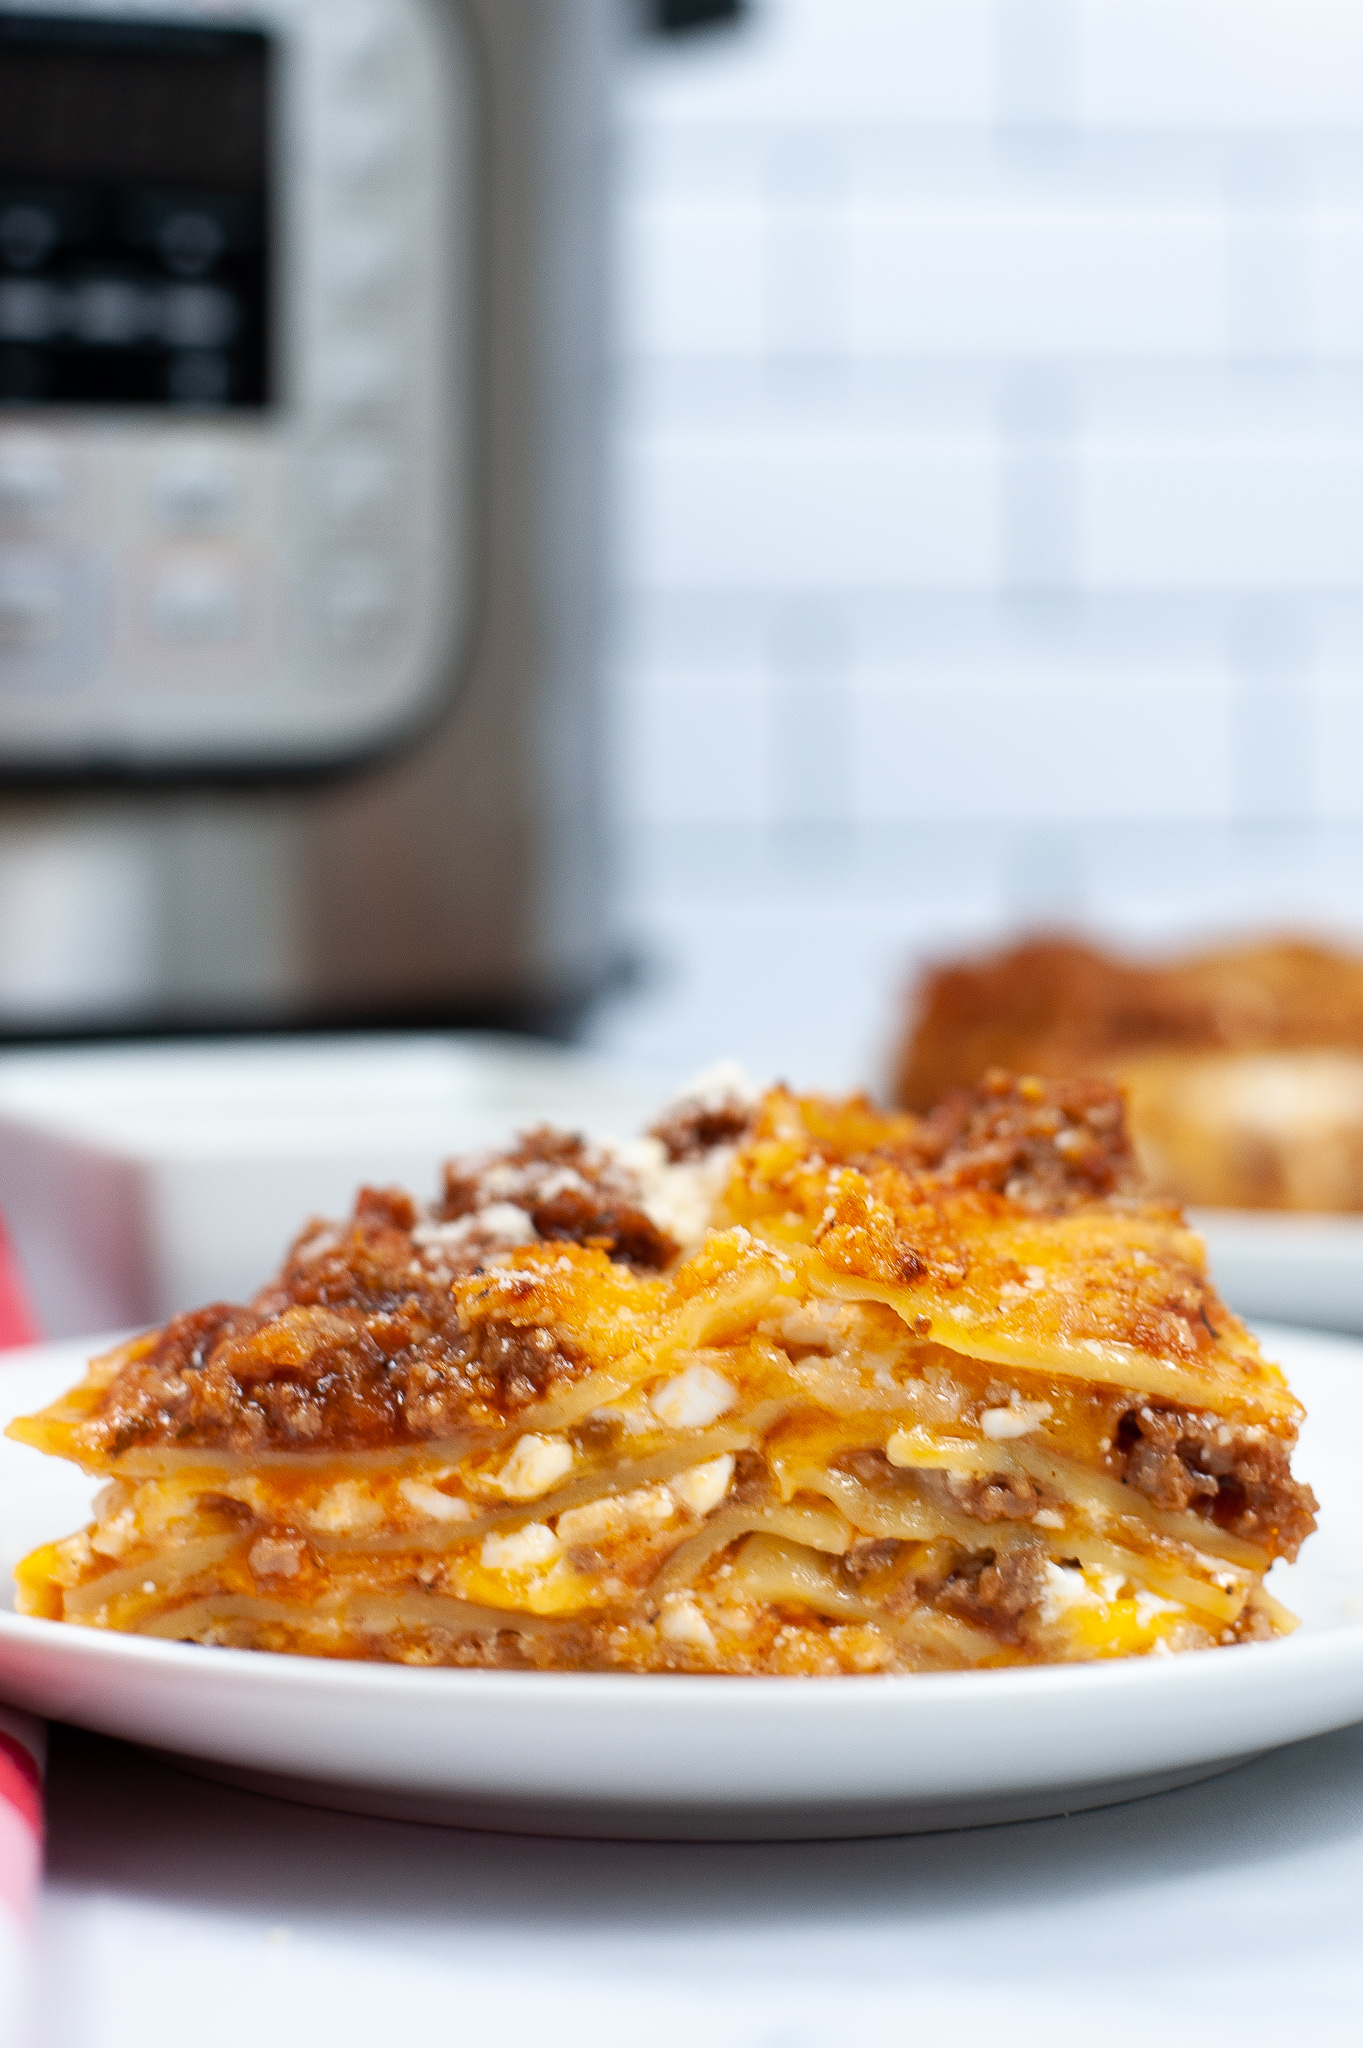 Close up of the lasagna on a white plate.